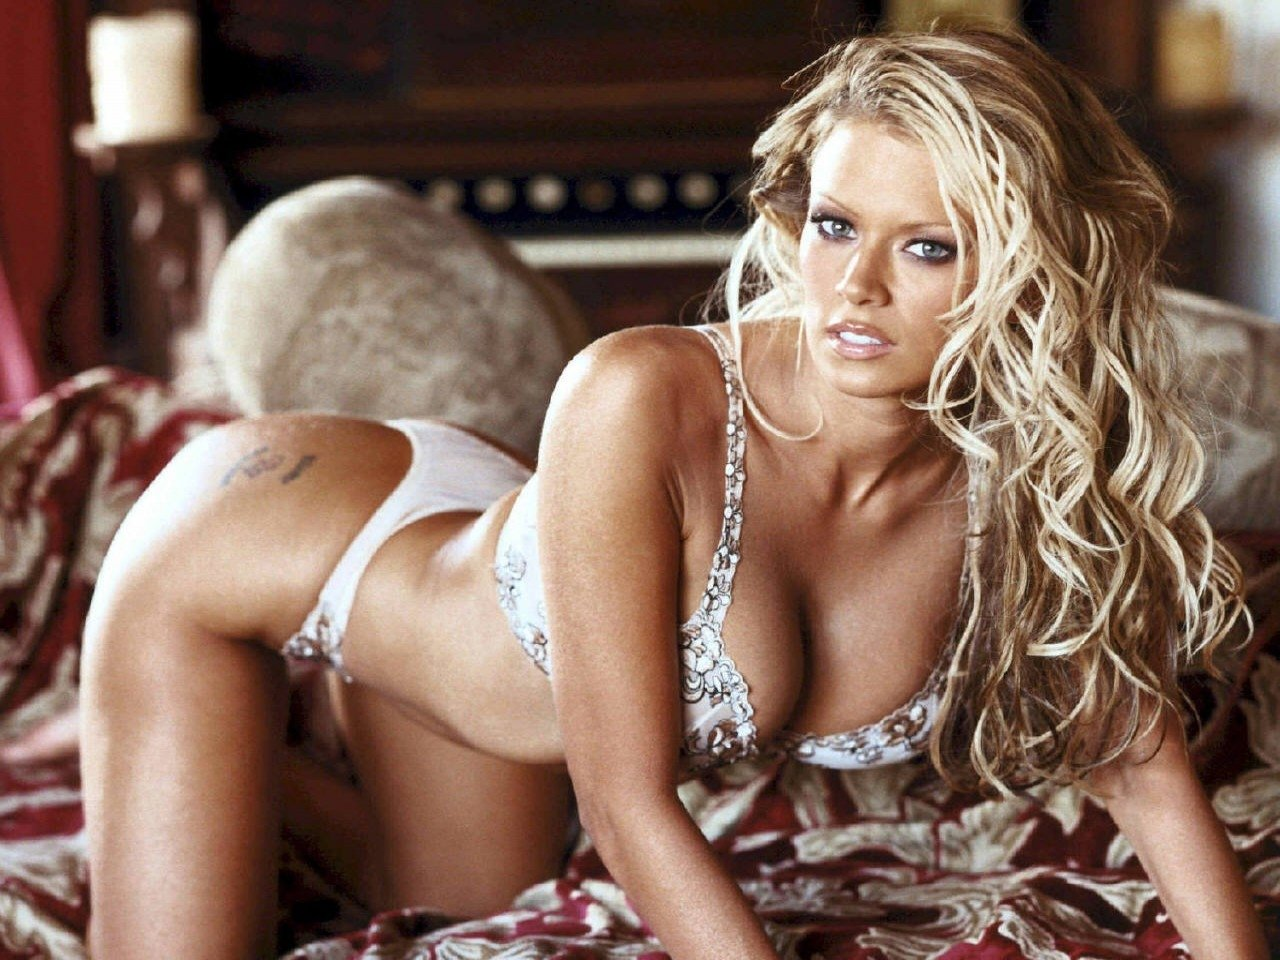 Wallpaper di Jenna Jameson